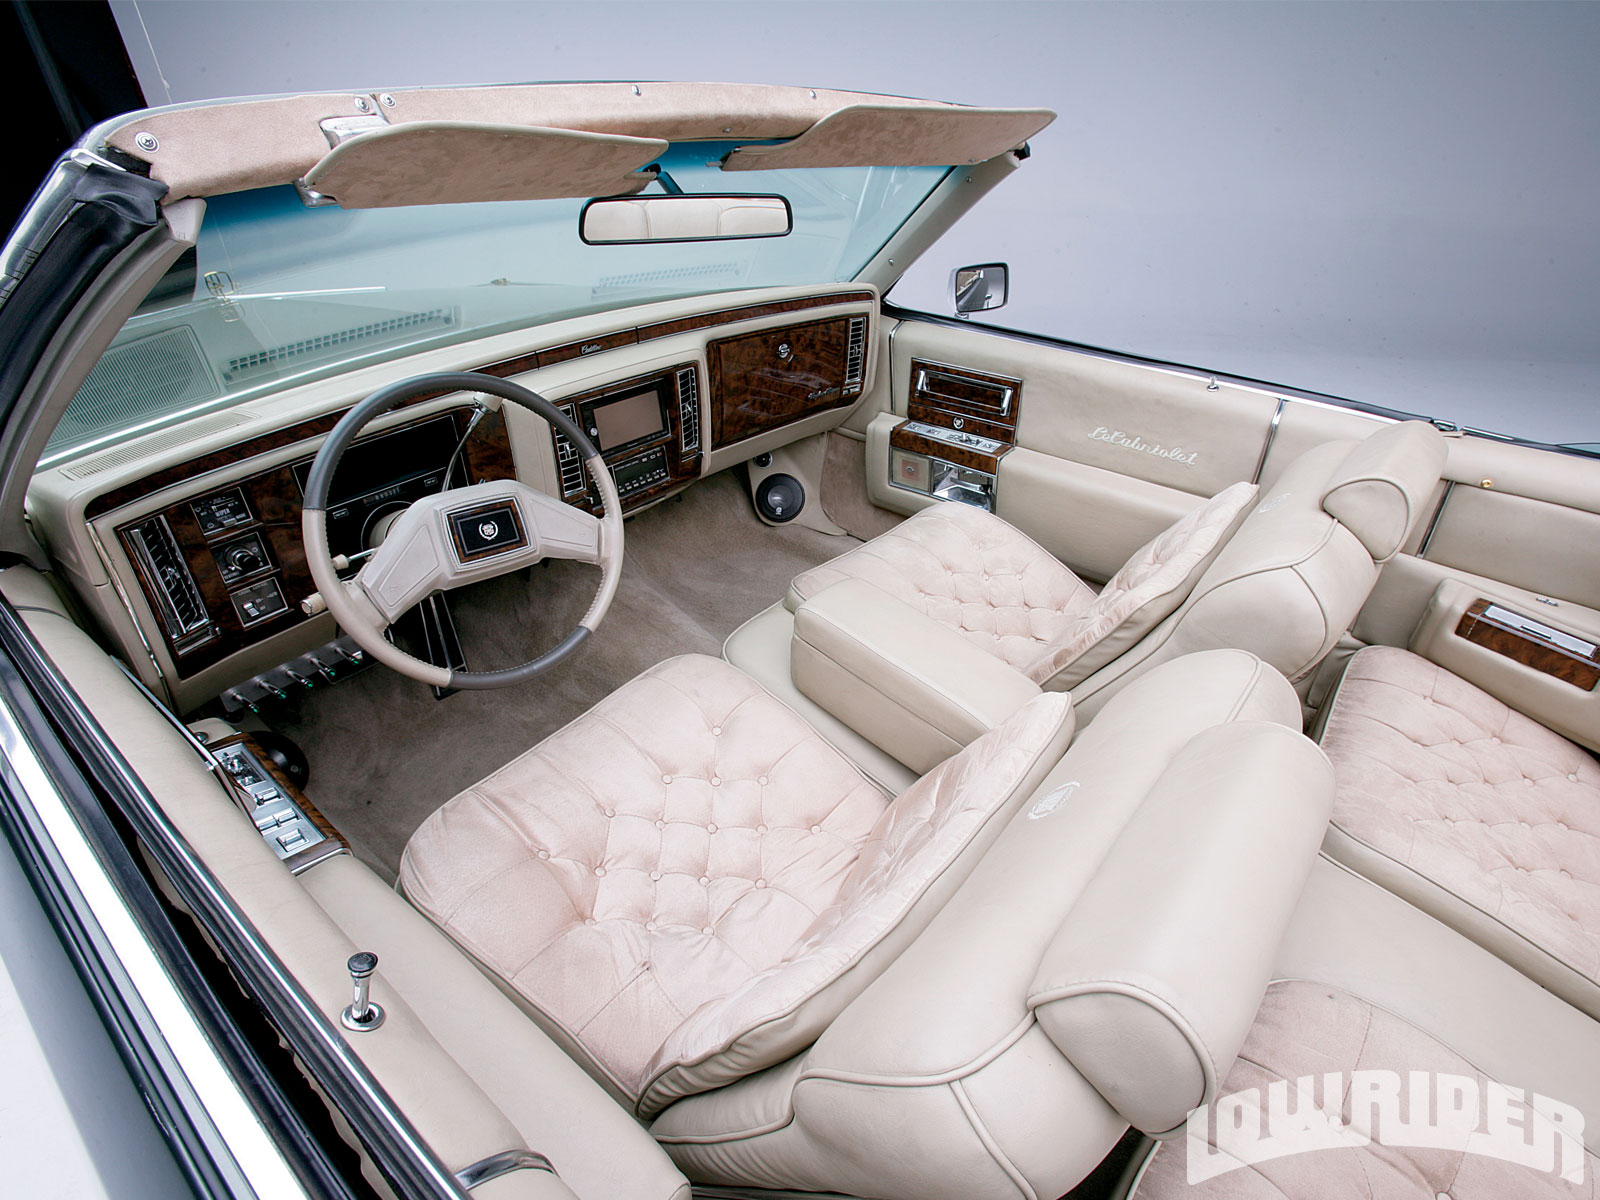 1982 Cadillac Coupe Deville Le Cabriolet 1992 Gm 350 5 7 Liter Engine Lowrider Magazine